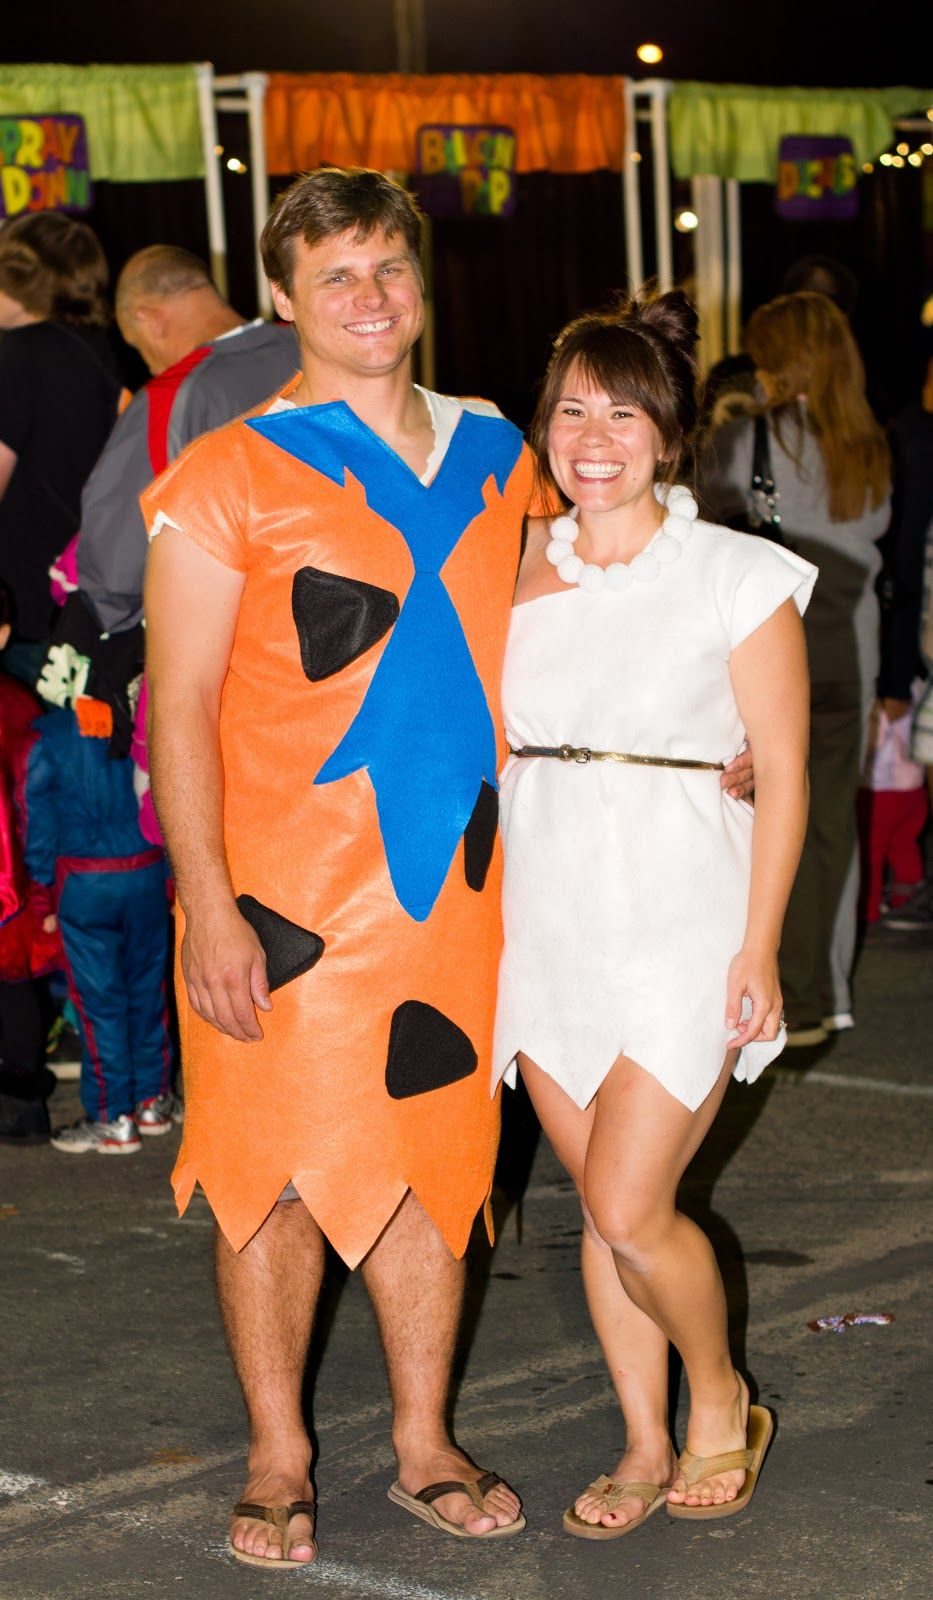 Domestic Fashionista  Fred and Wilma Flinstone--Coupleu0027s Halloween Costume  sc 1 st  Pinterest & Fred and Wilma Flintstone--Coupleu0027s Halloween Costume | Pinterest ...